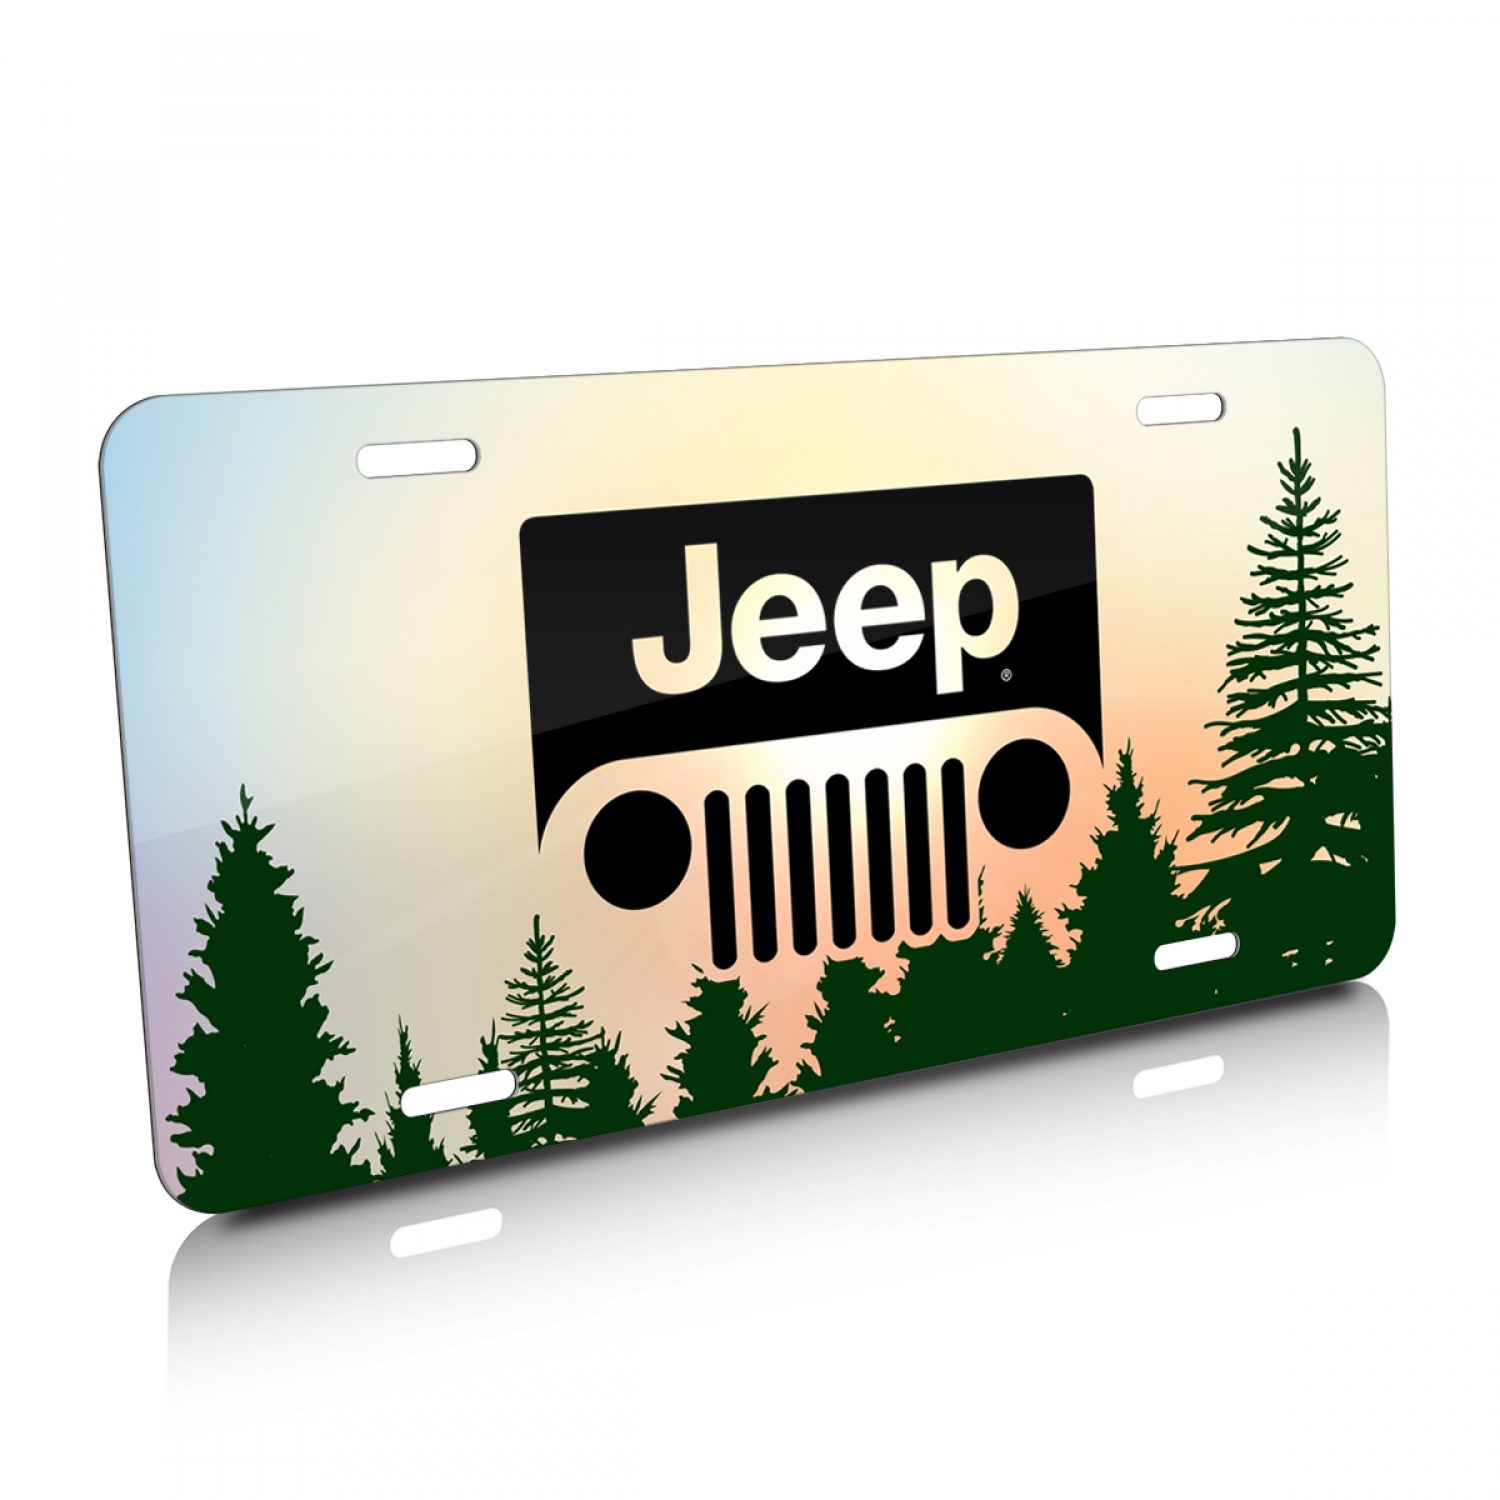 Jeep Grill Logo Green Forrest Sillhouette Graphic Aluminum License Plate